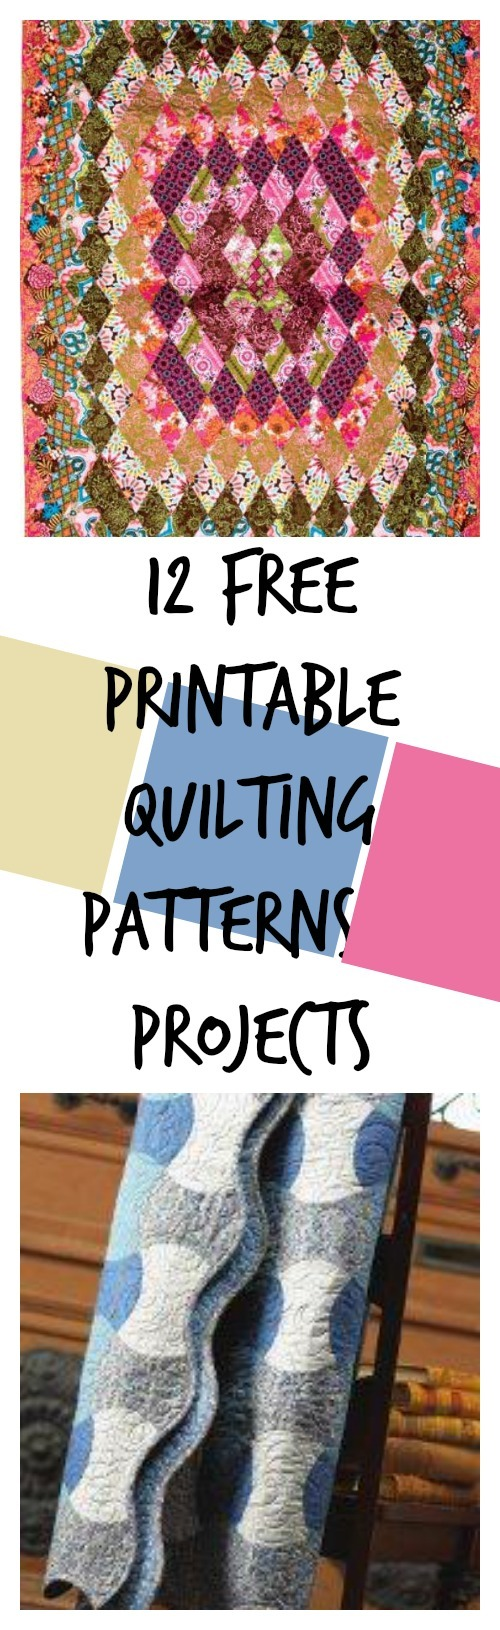 12 Awesome Free Quilt Patterns And Small Quilted Projects Ebook